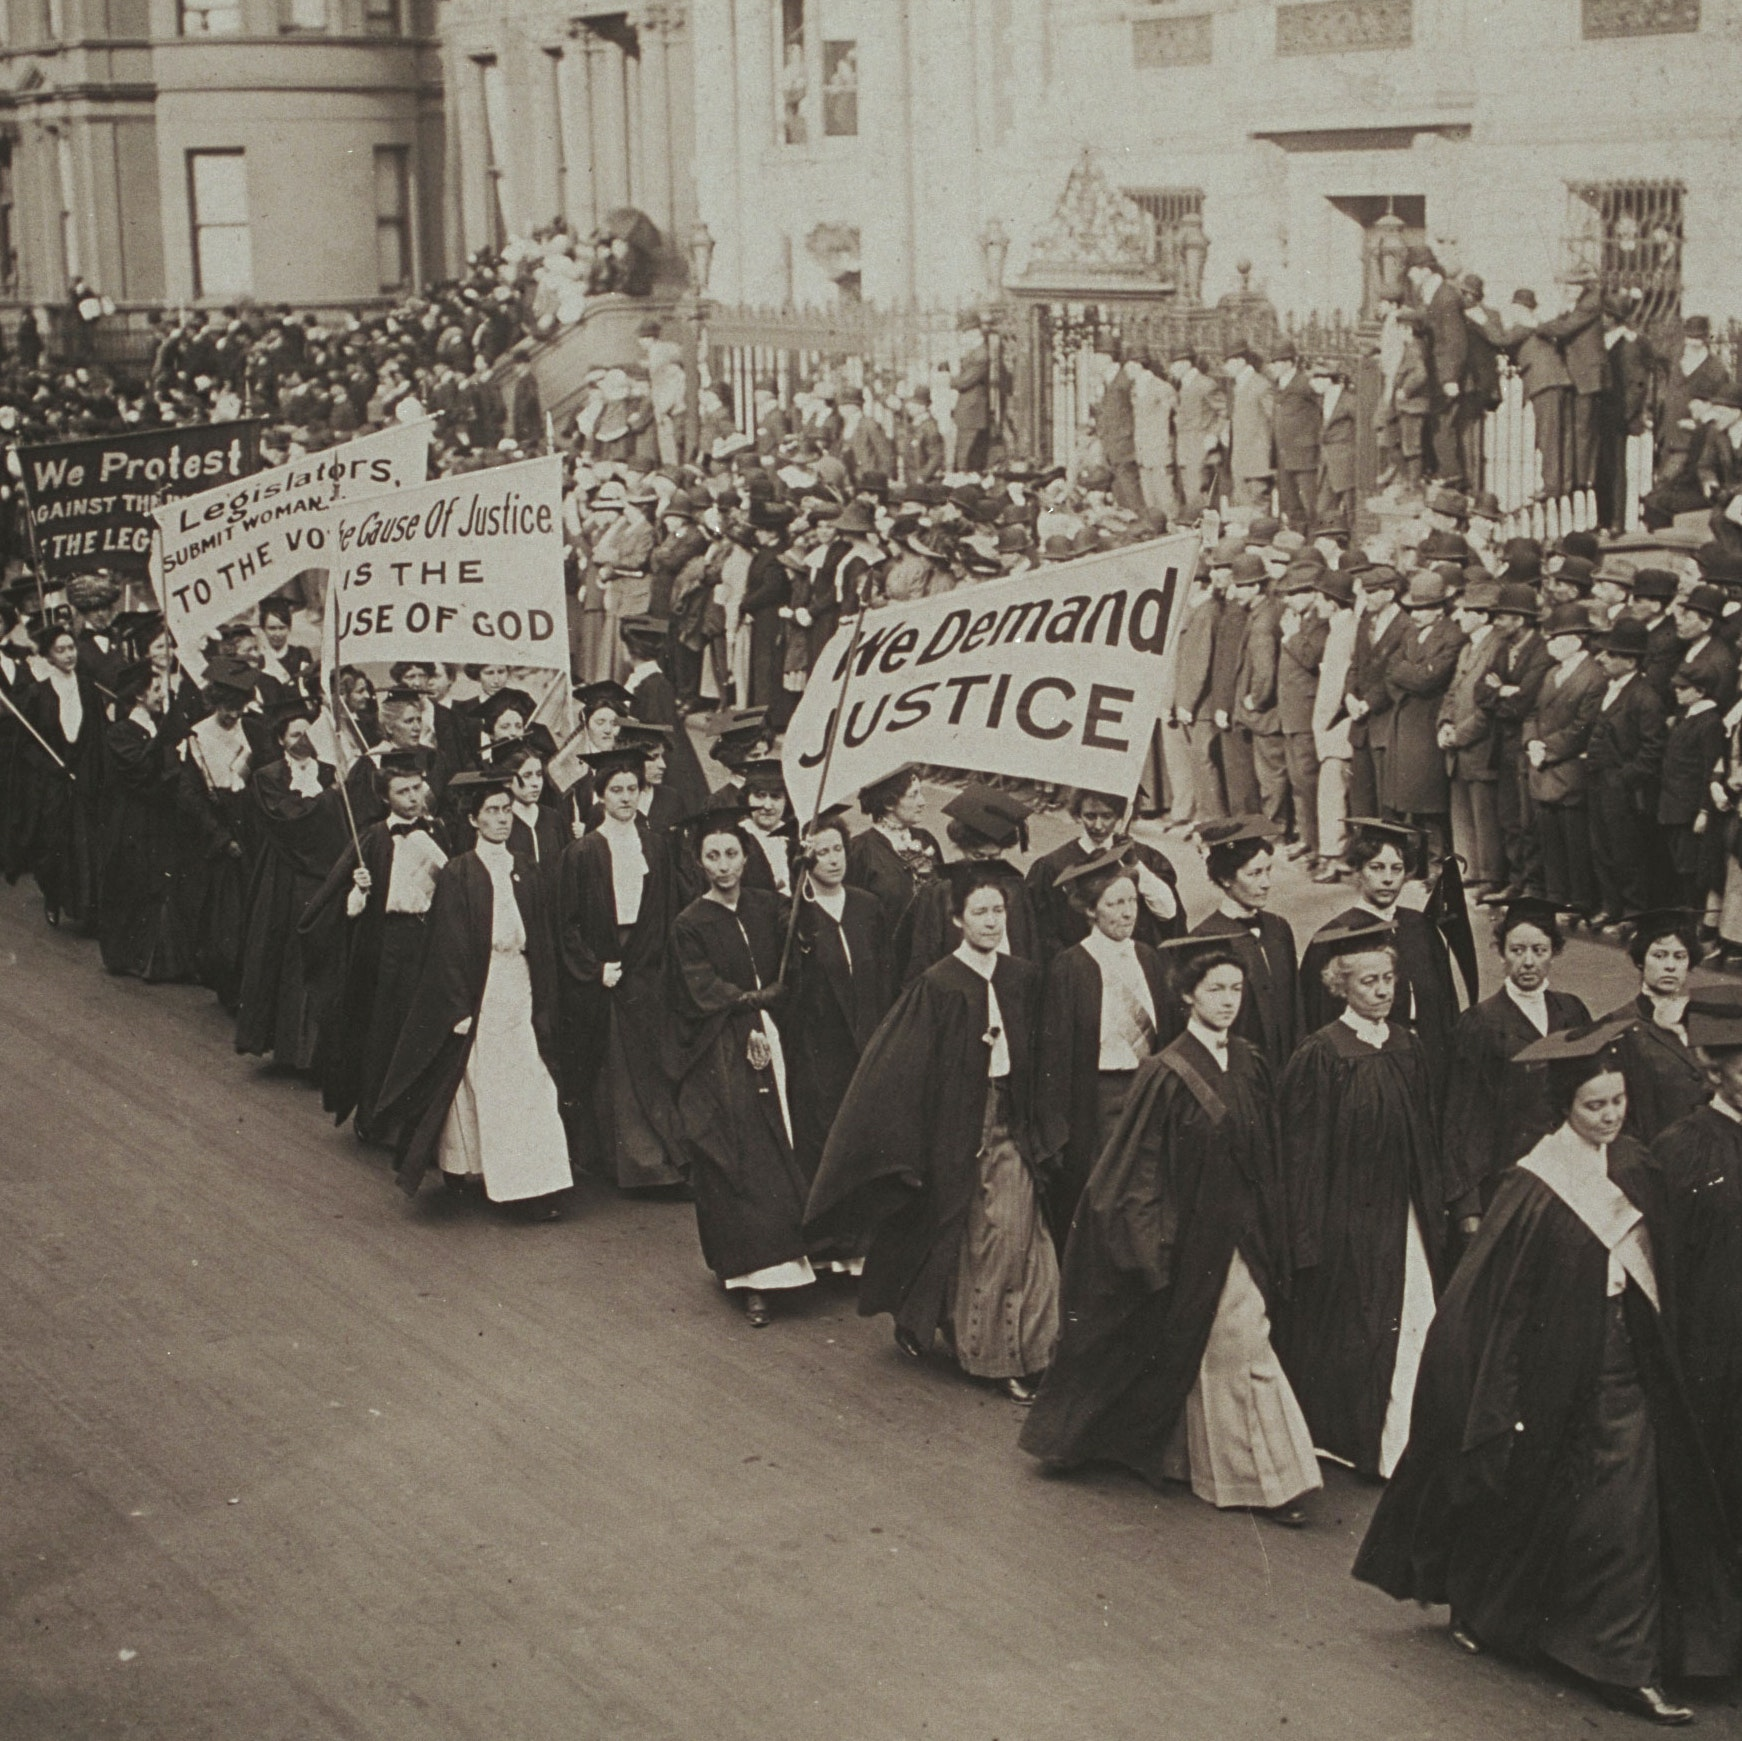 """Women in academic dress march in a suffrage parade in New York City. They carry banners that read """"We Demand Justice,"""" """"The Cause of Justice is the Cause of God,"""" """"Legislators, Submit Woman [cut off] To The Vote."""""""